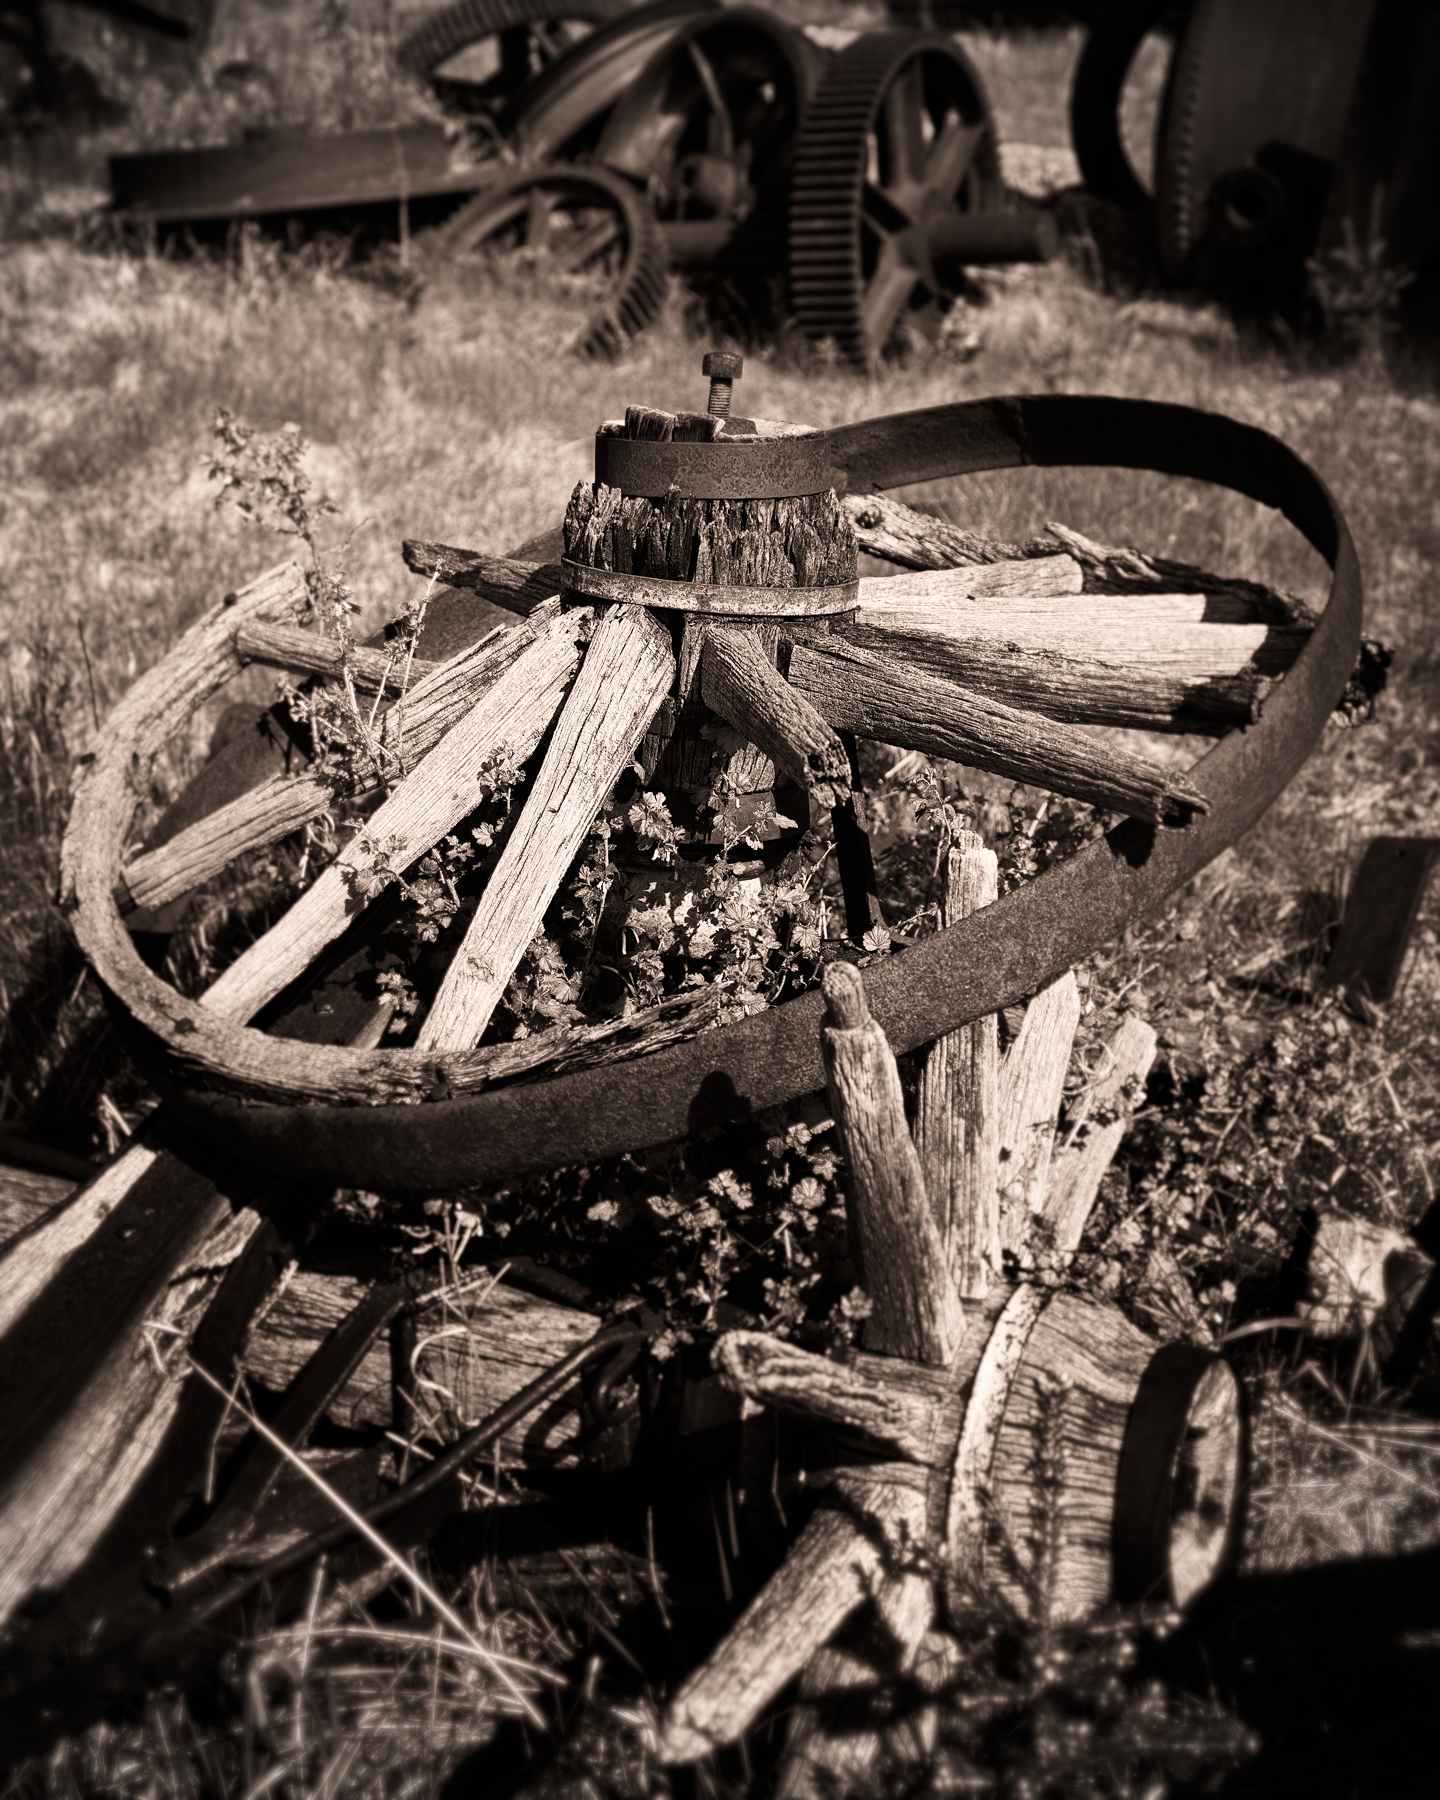 Boneyard of Wheels, Nordegg